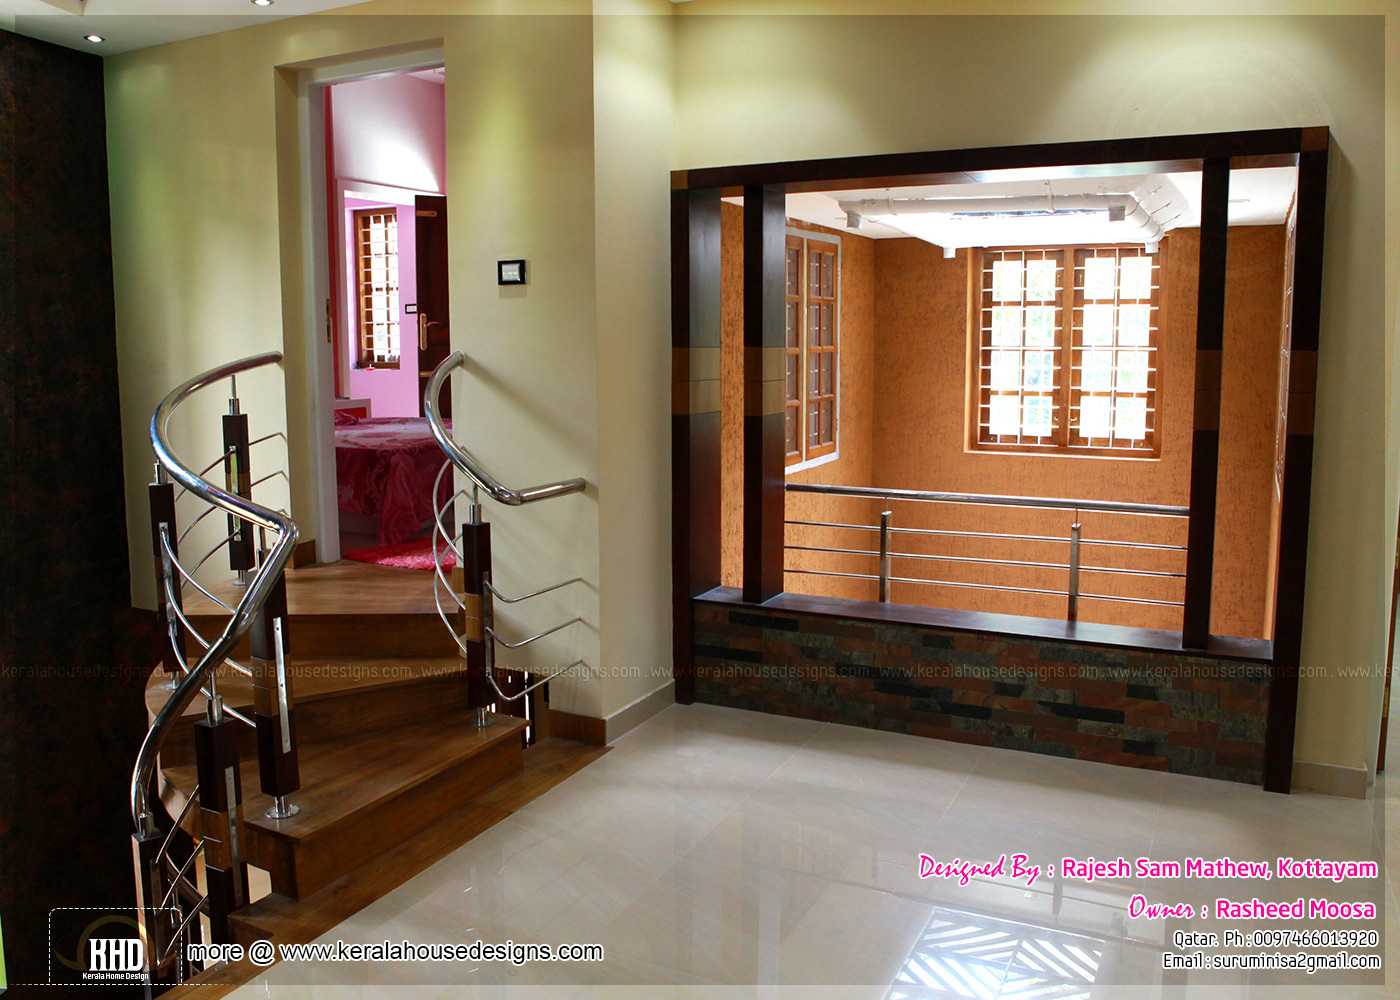 Kerala interior design with photos Kerala home design and floor